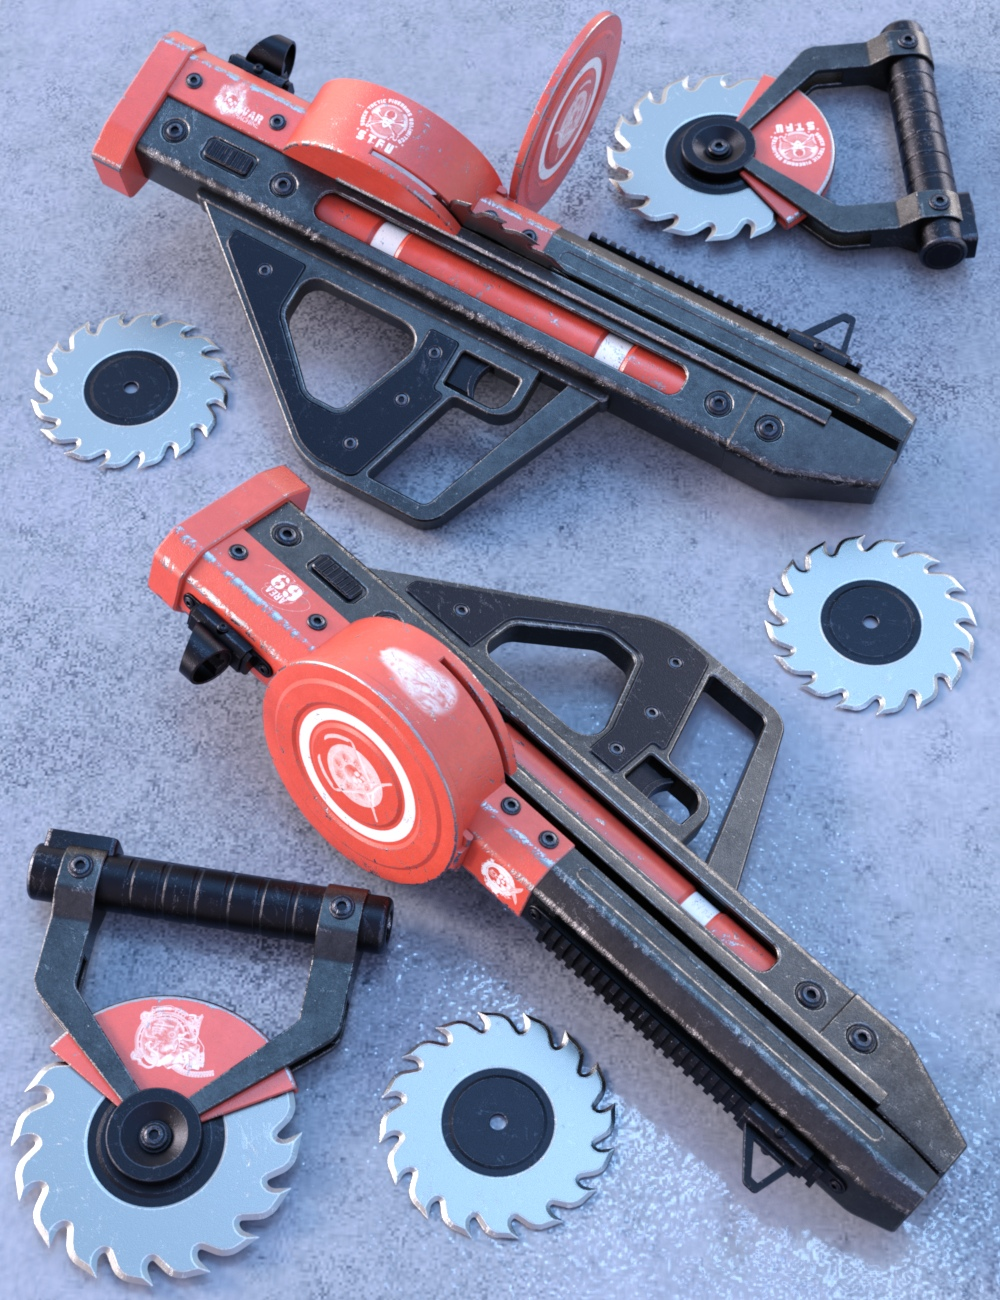 Blade Weapons by: Nightshift3D, 3D Models by Daz 3D